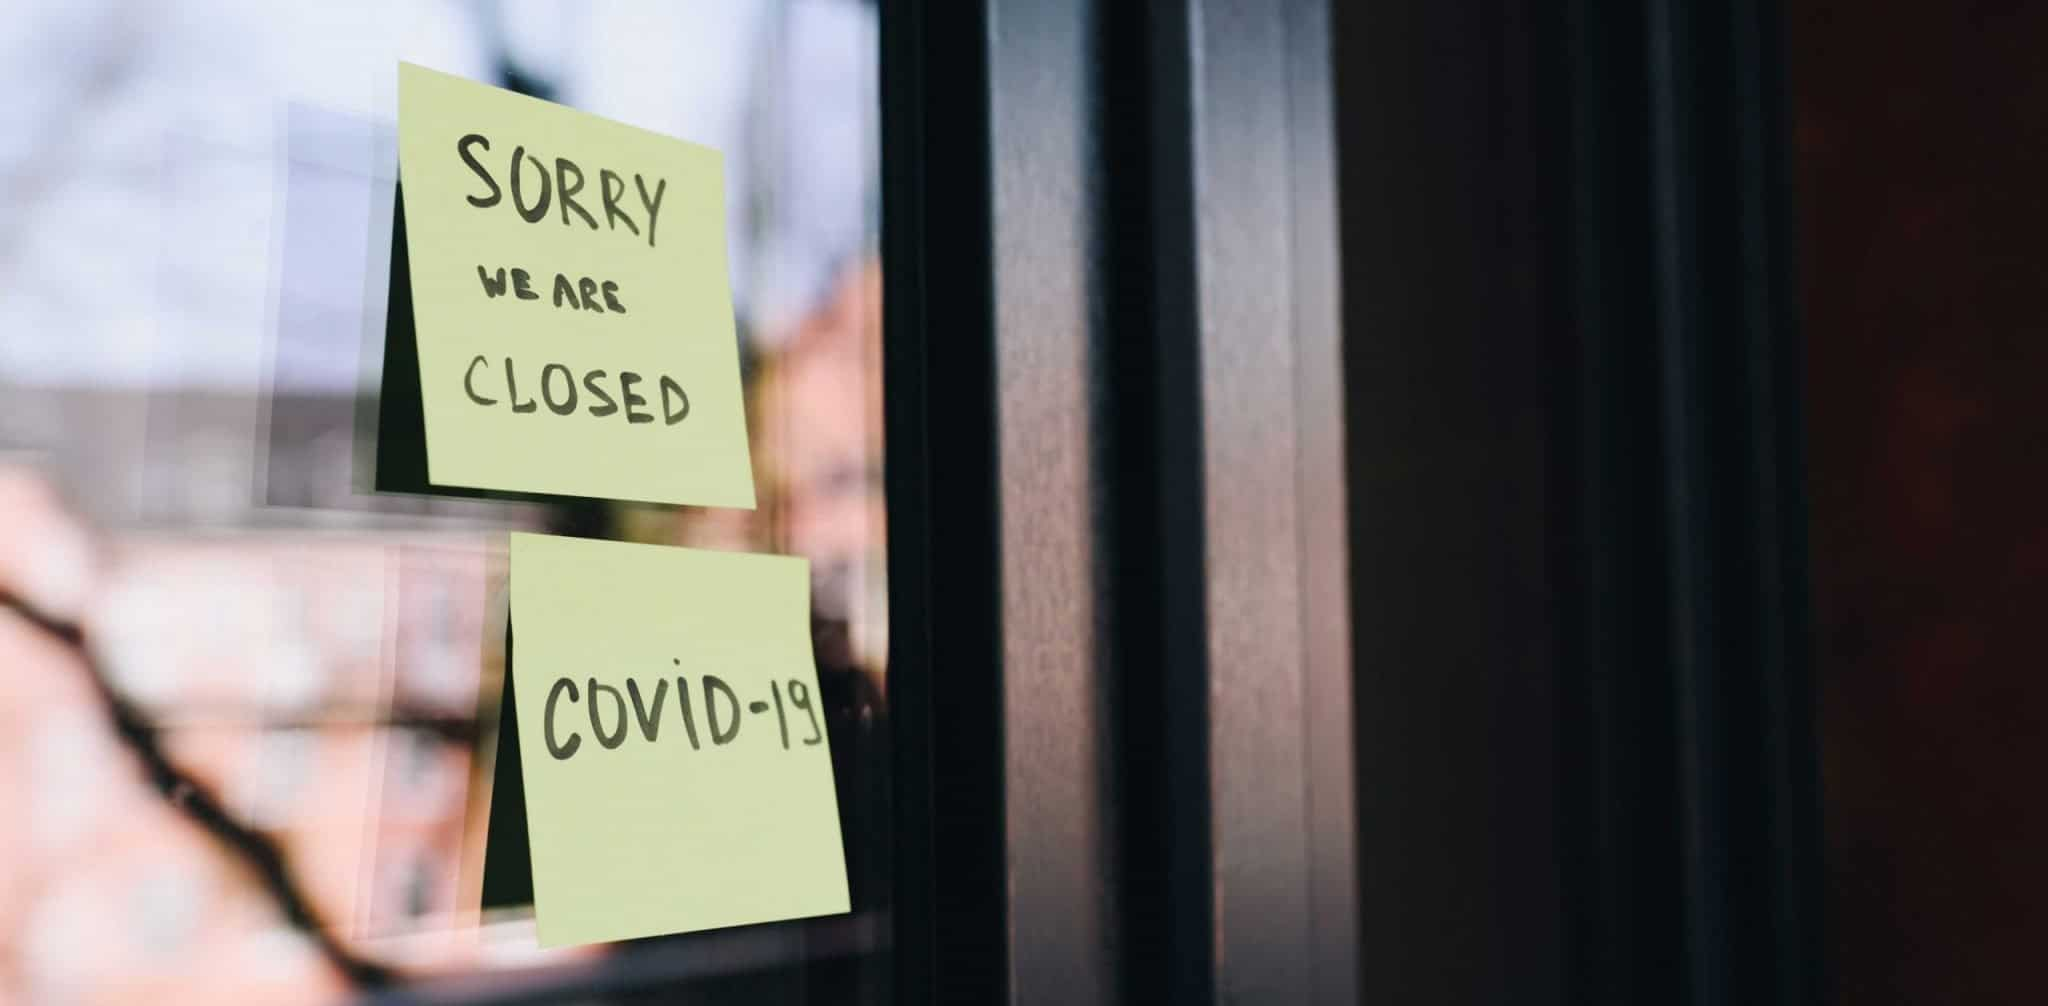 Pof a business closed due to Covid-19